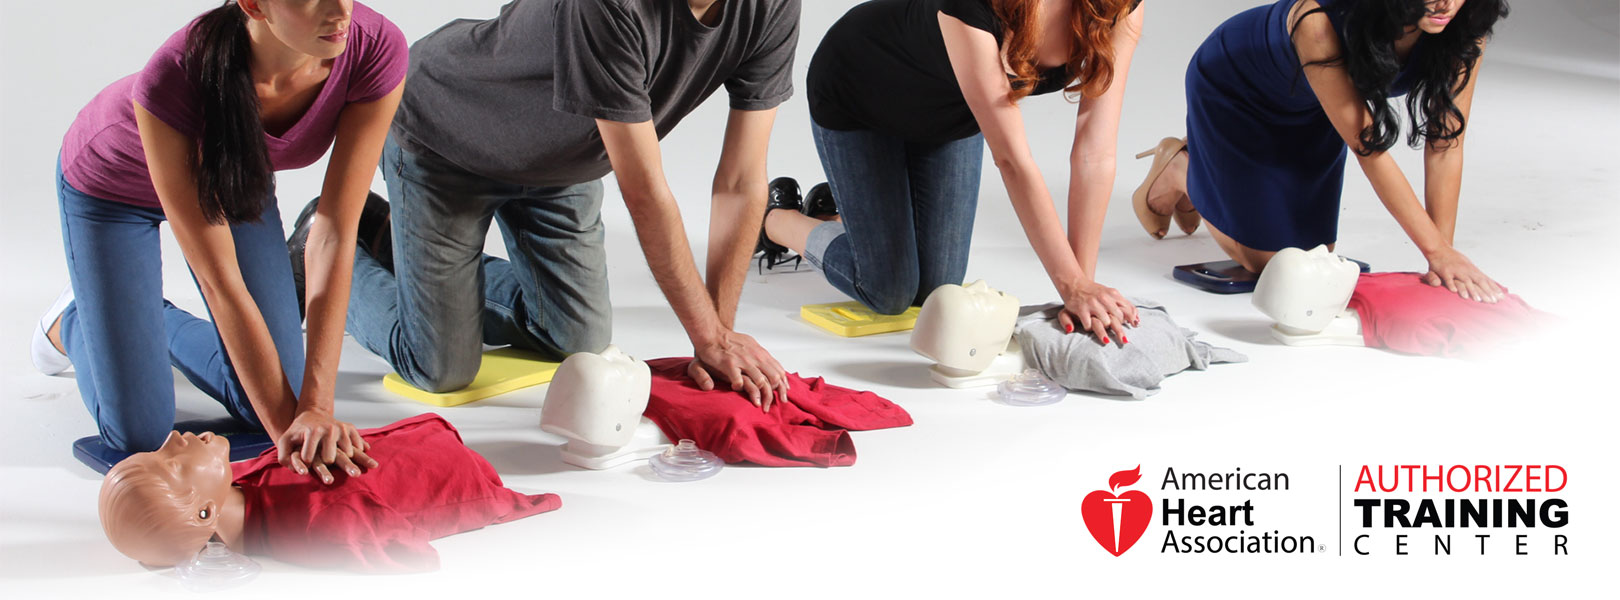 Cpr and first aid classes lifesavers first aid lifesavers inc cpr first aid training xflitez Choice Image